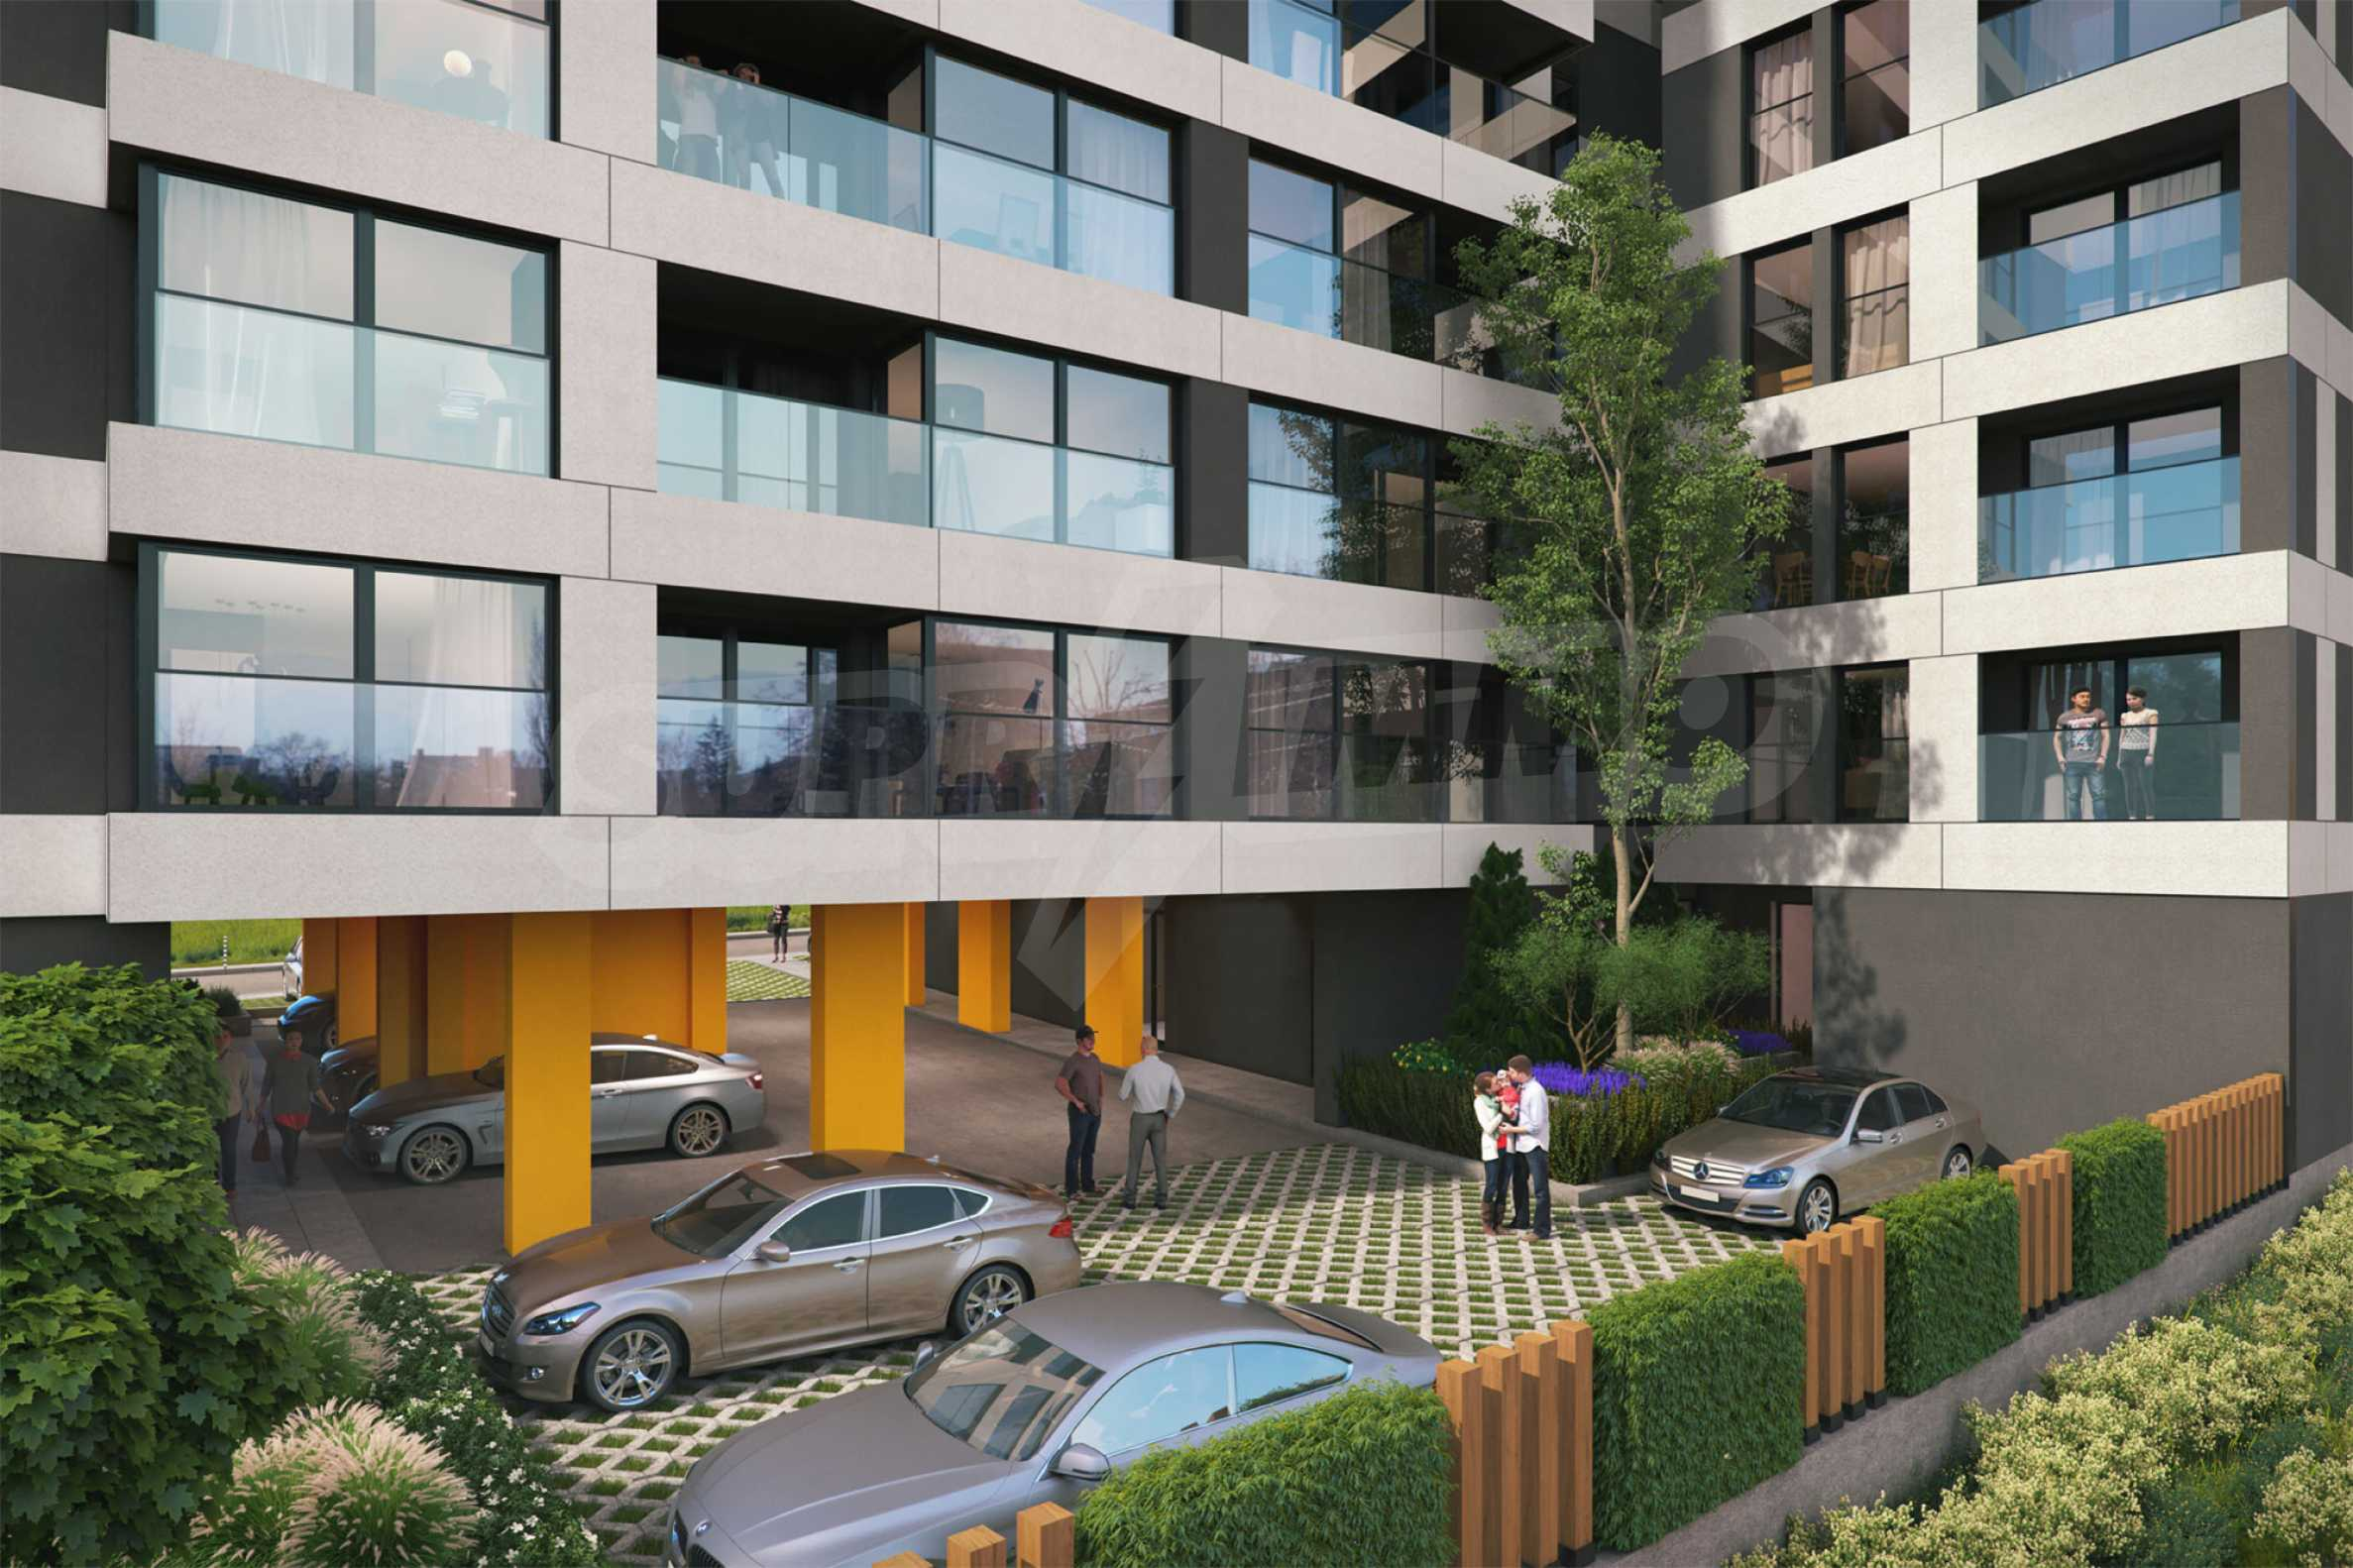 New building with apartments and shops near NBU at attractive prices 2